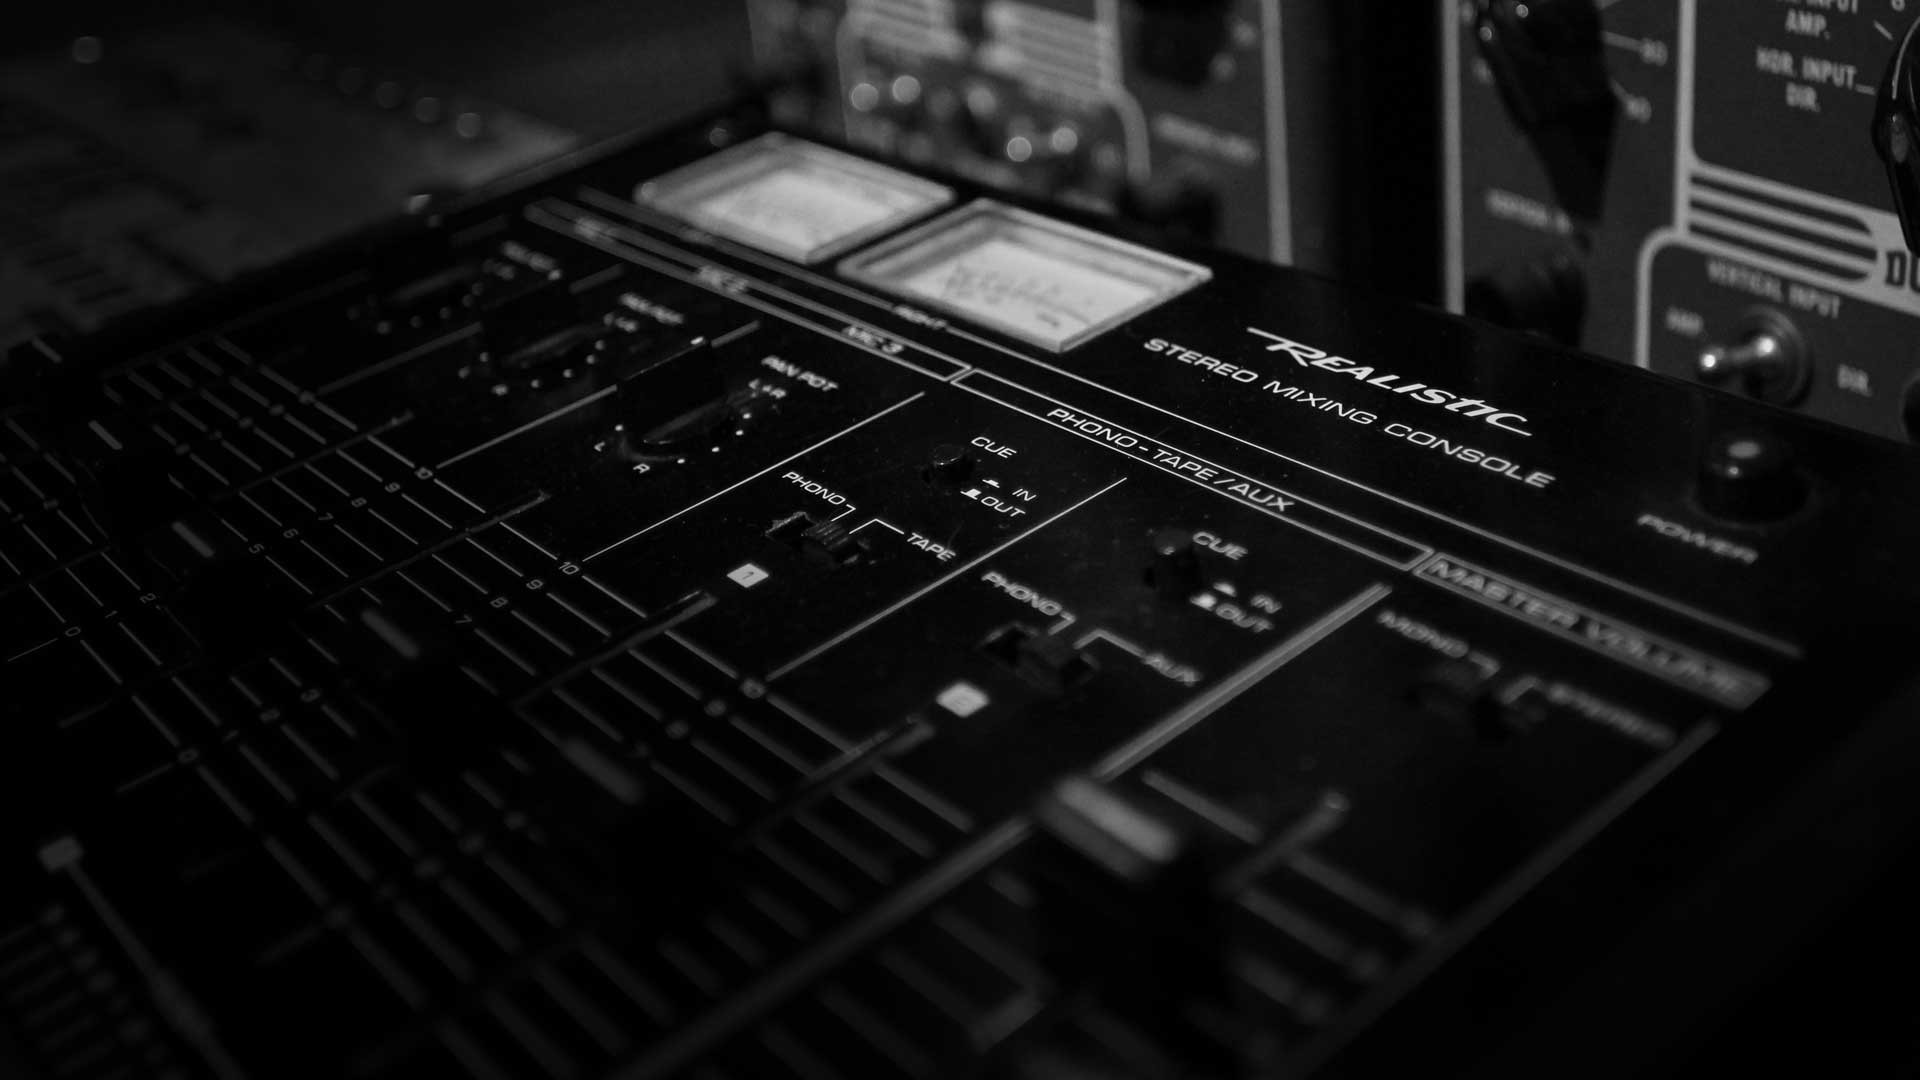 Recording Studio Iphone Wallpaper Hd Recording Studio Wallpaper 70 Images